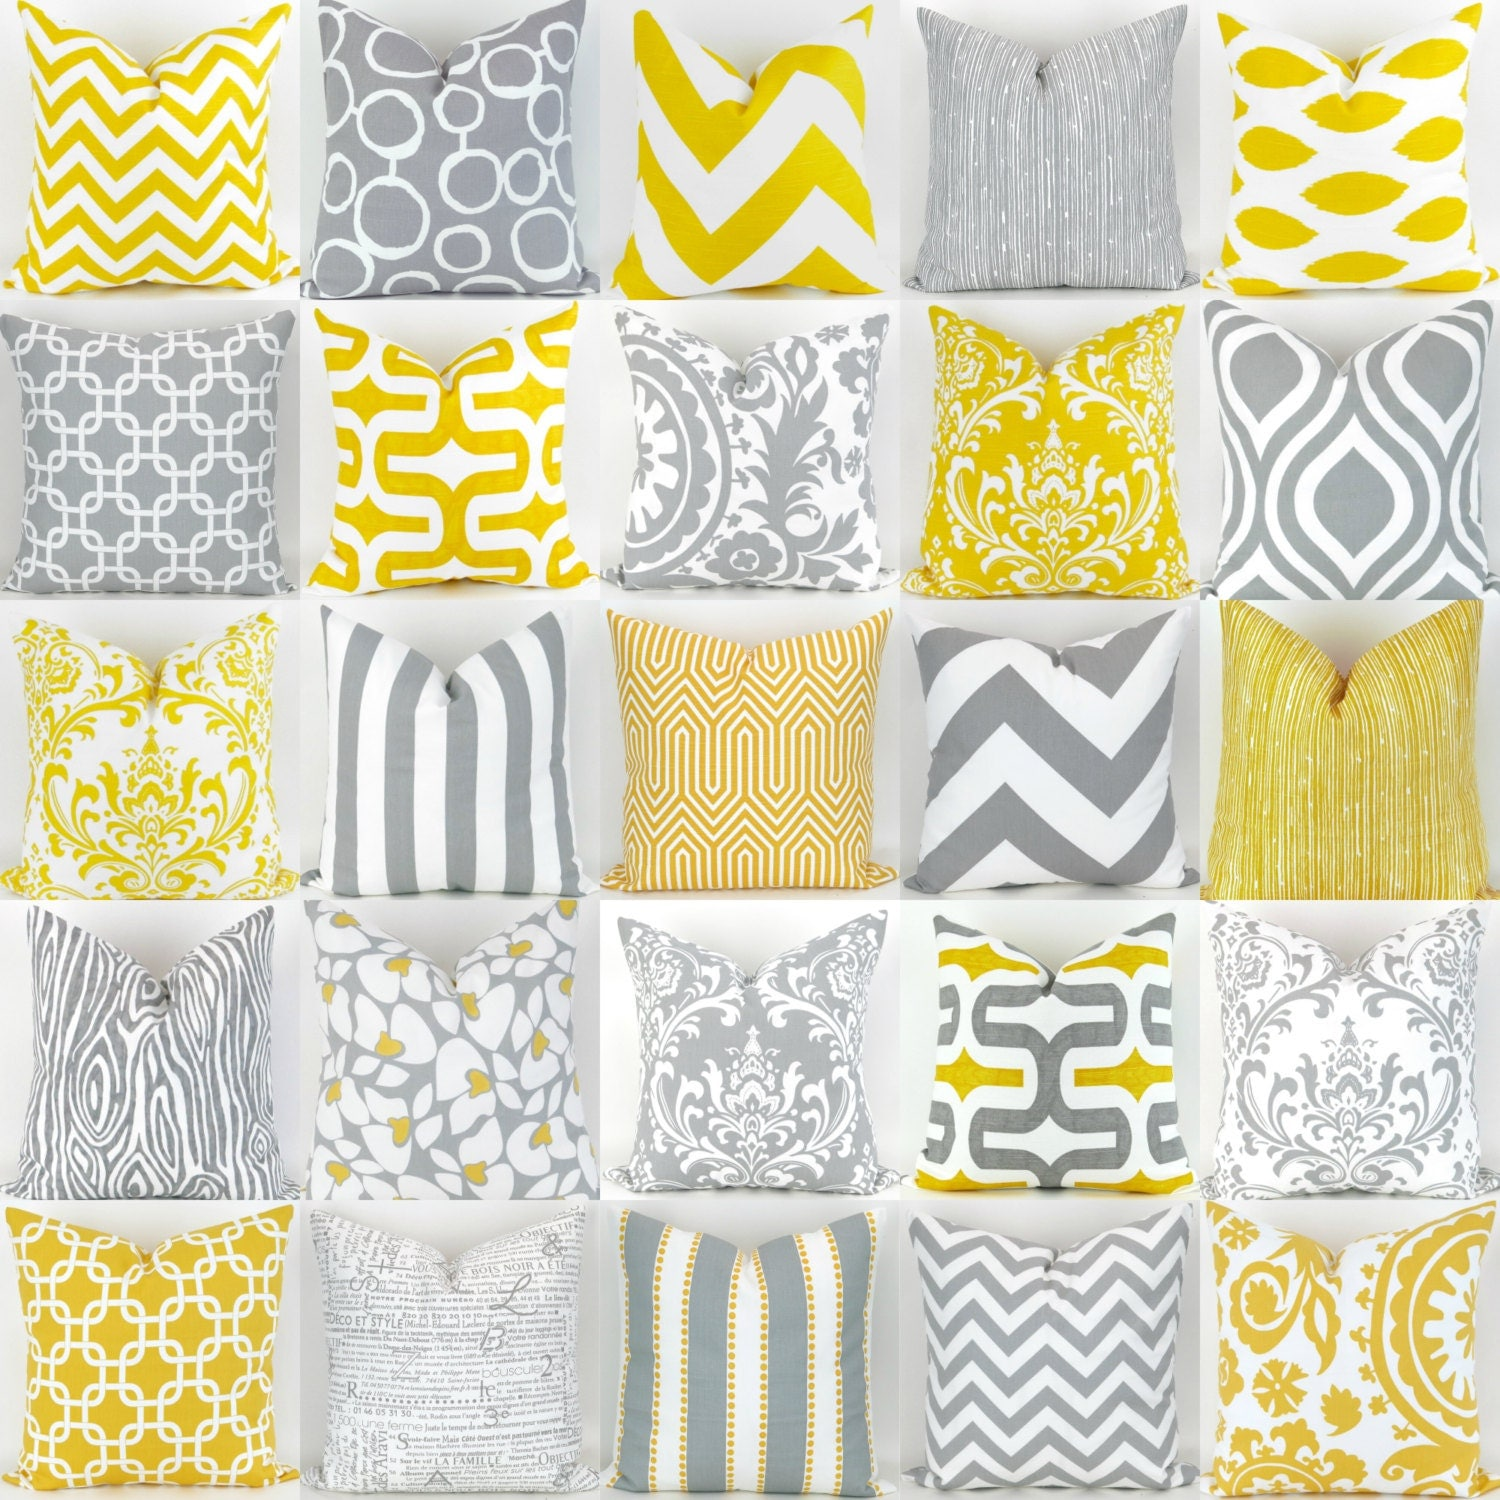 Yellow & Gray Pillow Covers 18x18 inch Mix/Match patterns